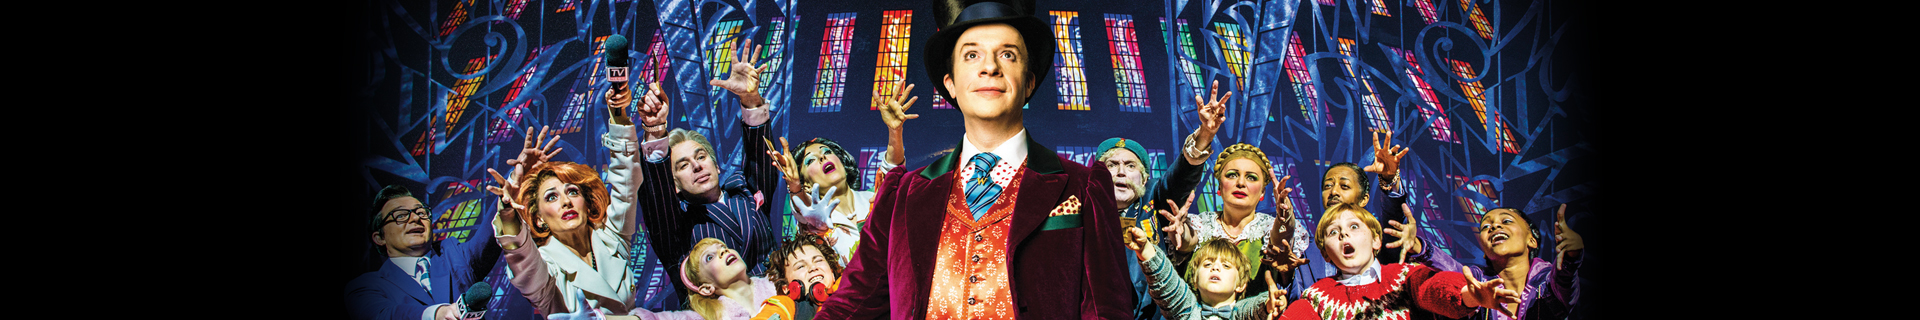 Charlie and the Chocolate Factory banner image